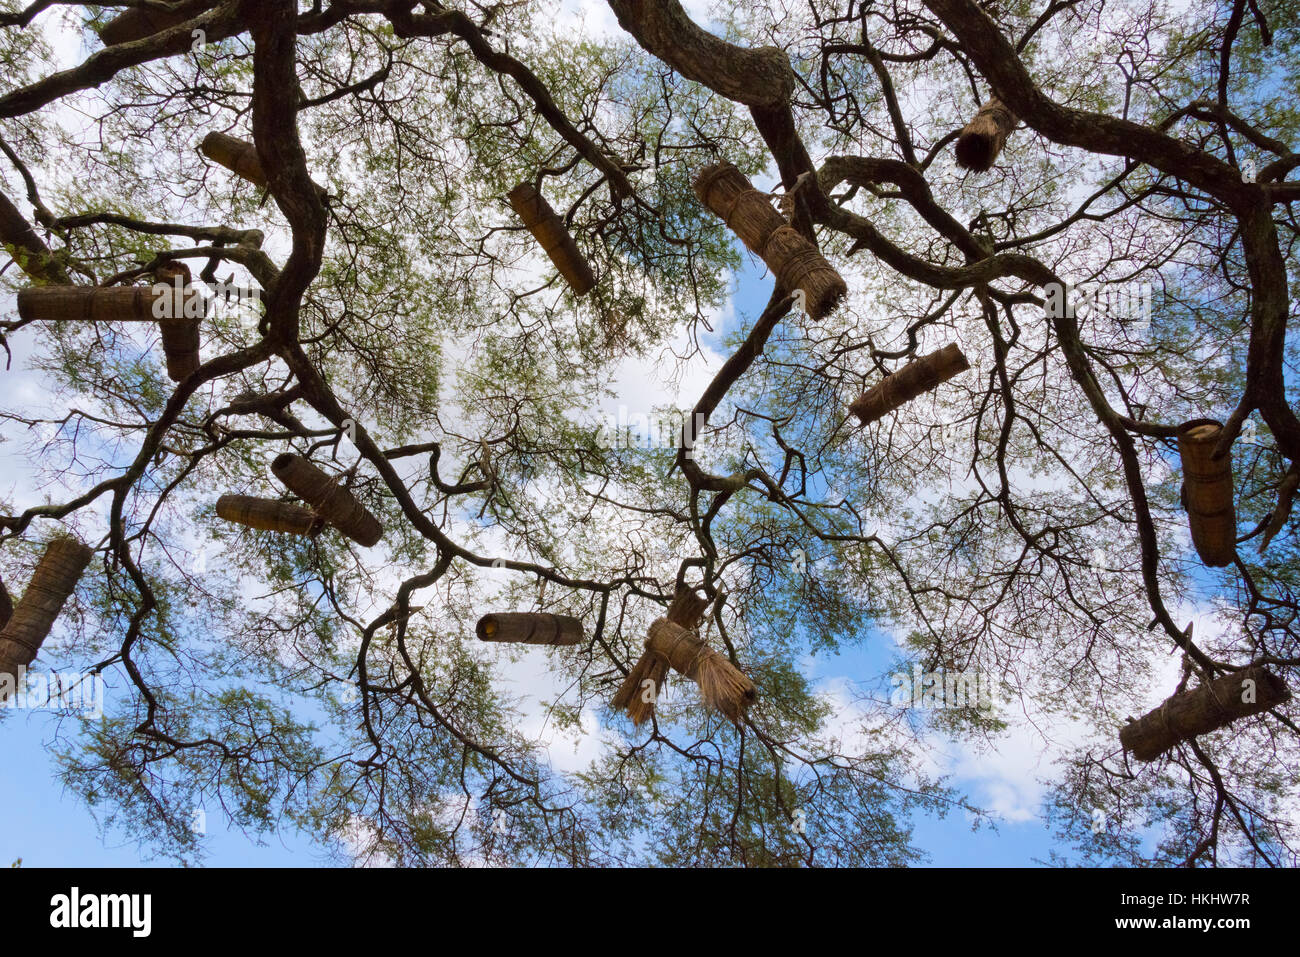 Beehives on acacia tree, Arba Minch, Southern Nations, Nationalities, and Peoples' Region, Ethiopia - Stock Image